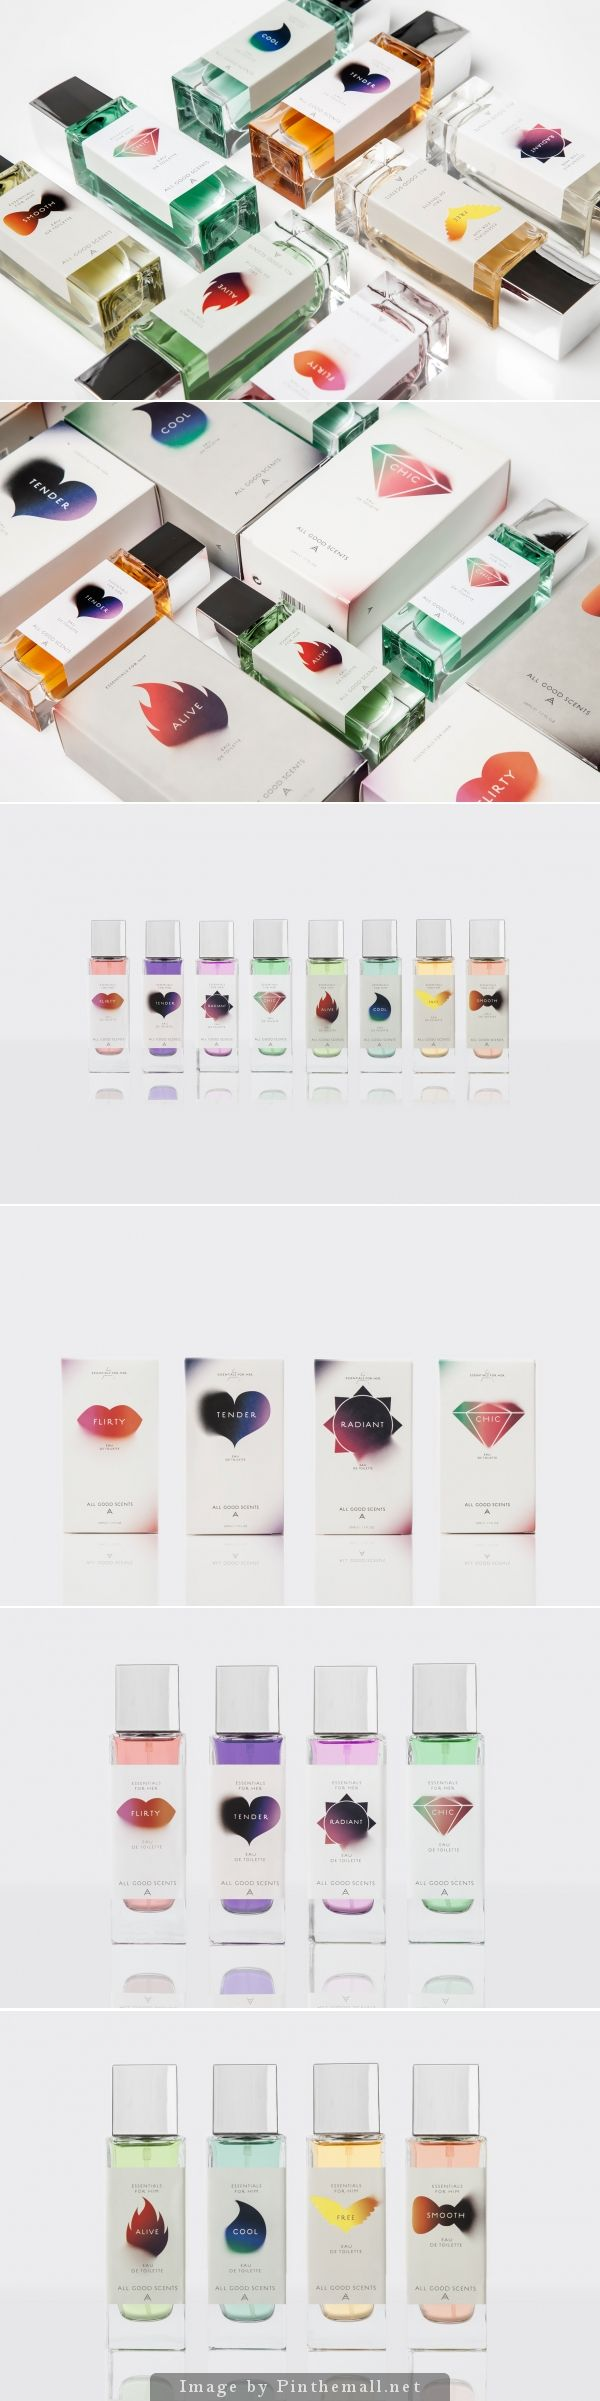 All these scents in great #packaging which is yours curated by Packaging Diva PD created via http://wearemucho.com/en/project/all-good-scents